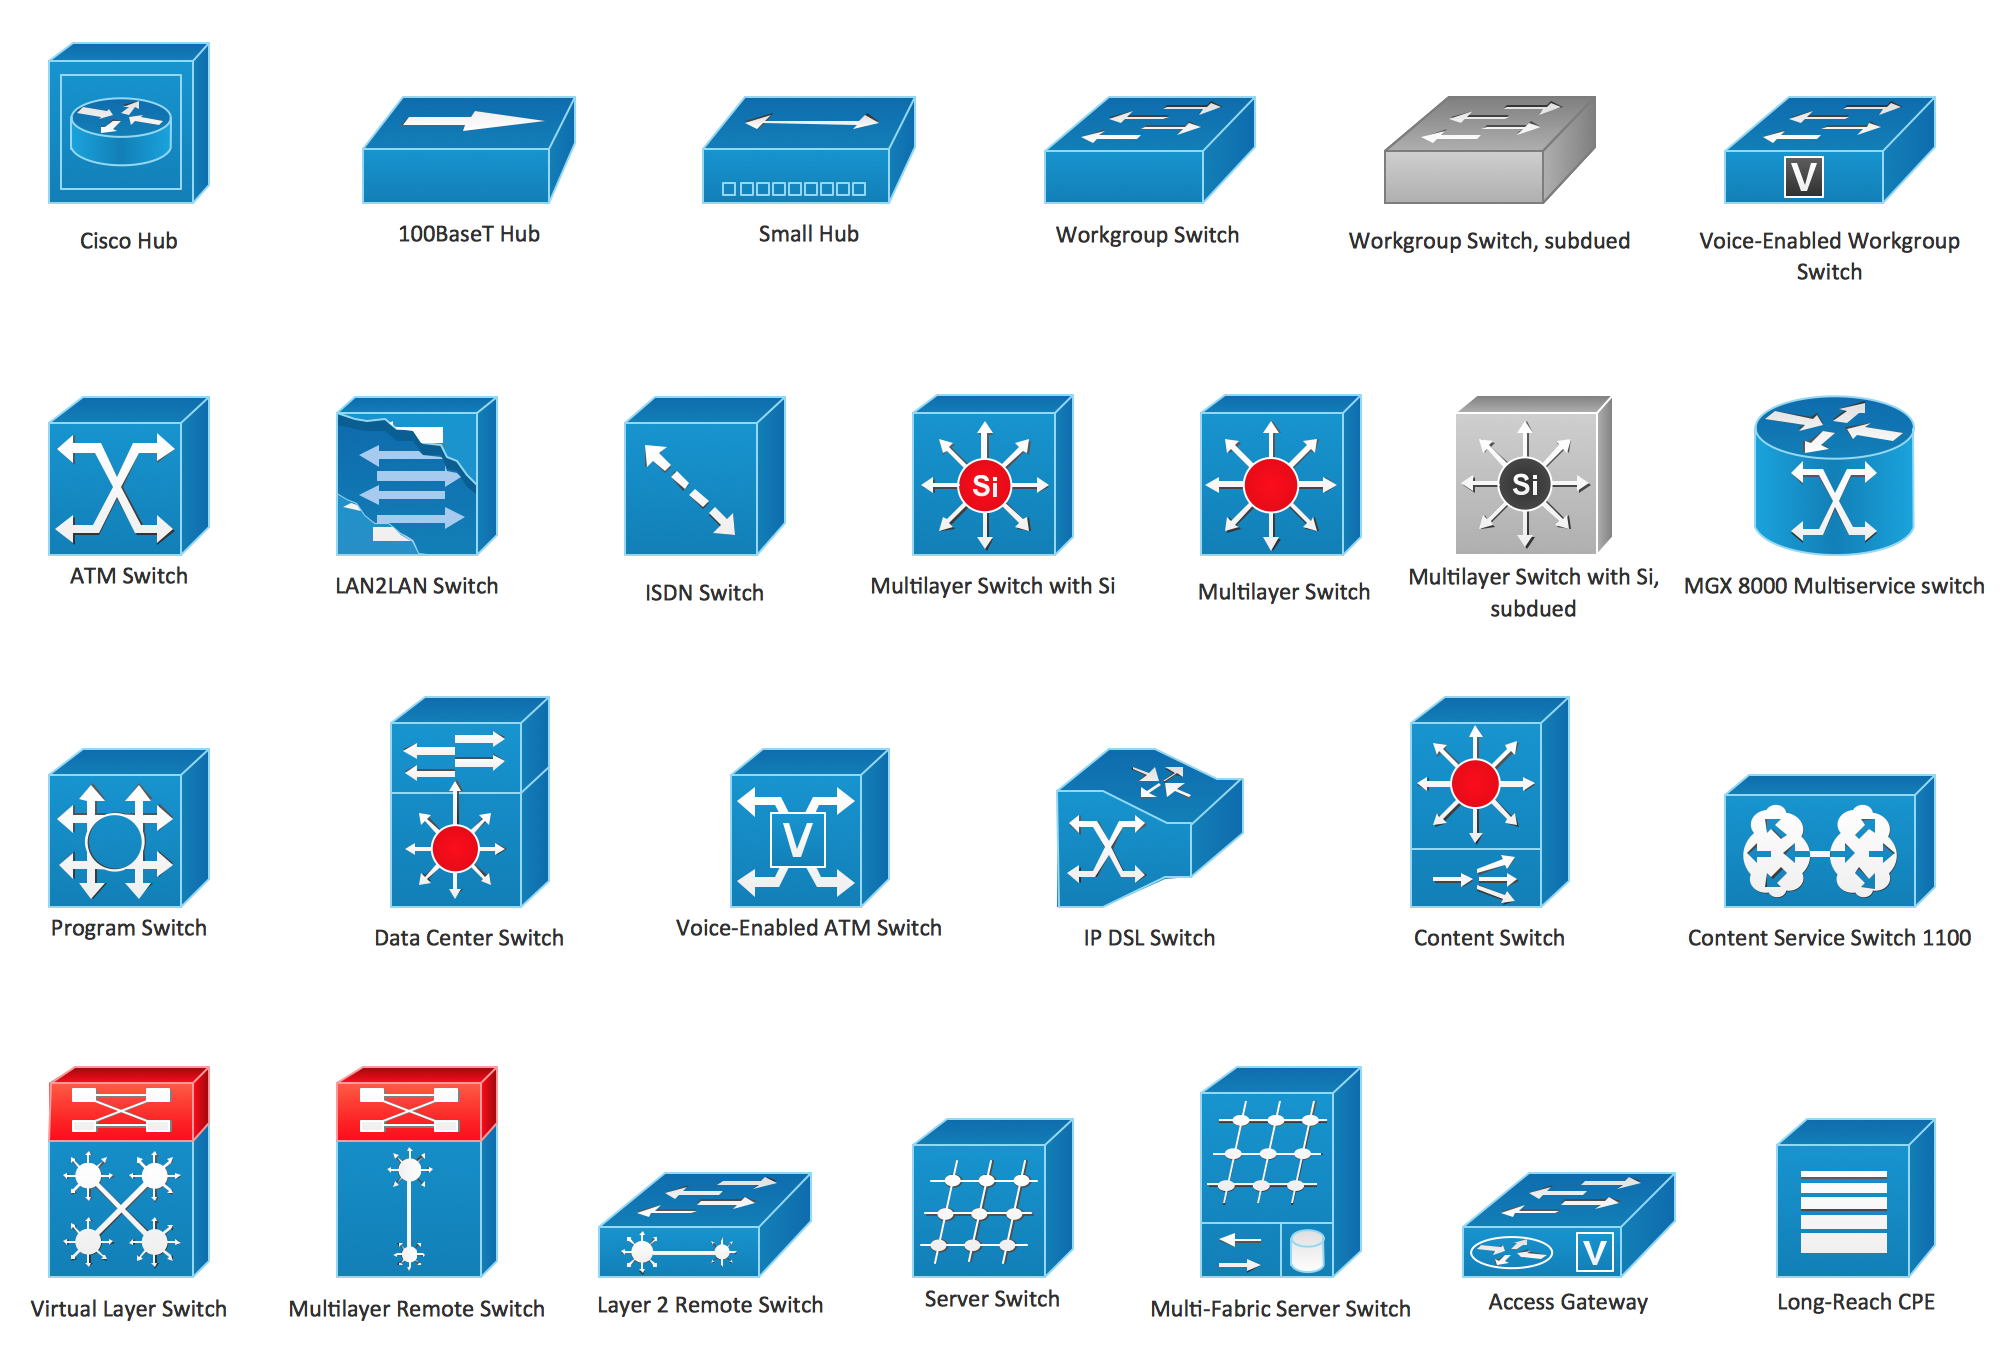 network server diagram icon cisco clipart - clipground lync edge server diagram #11